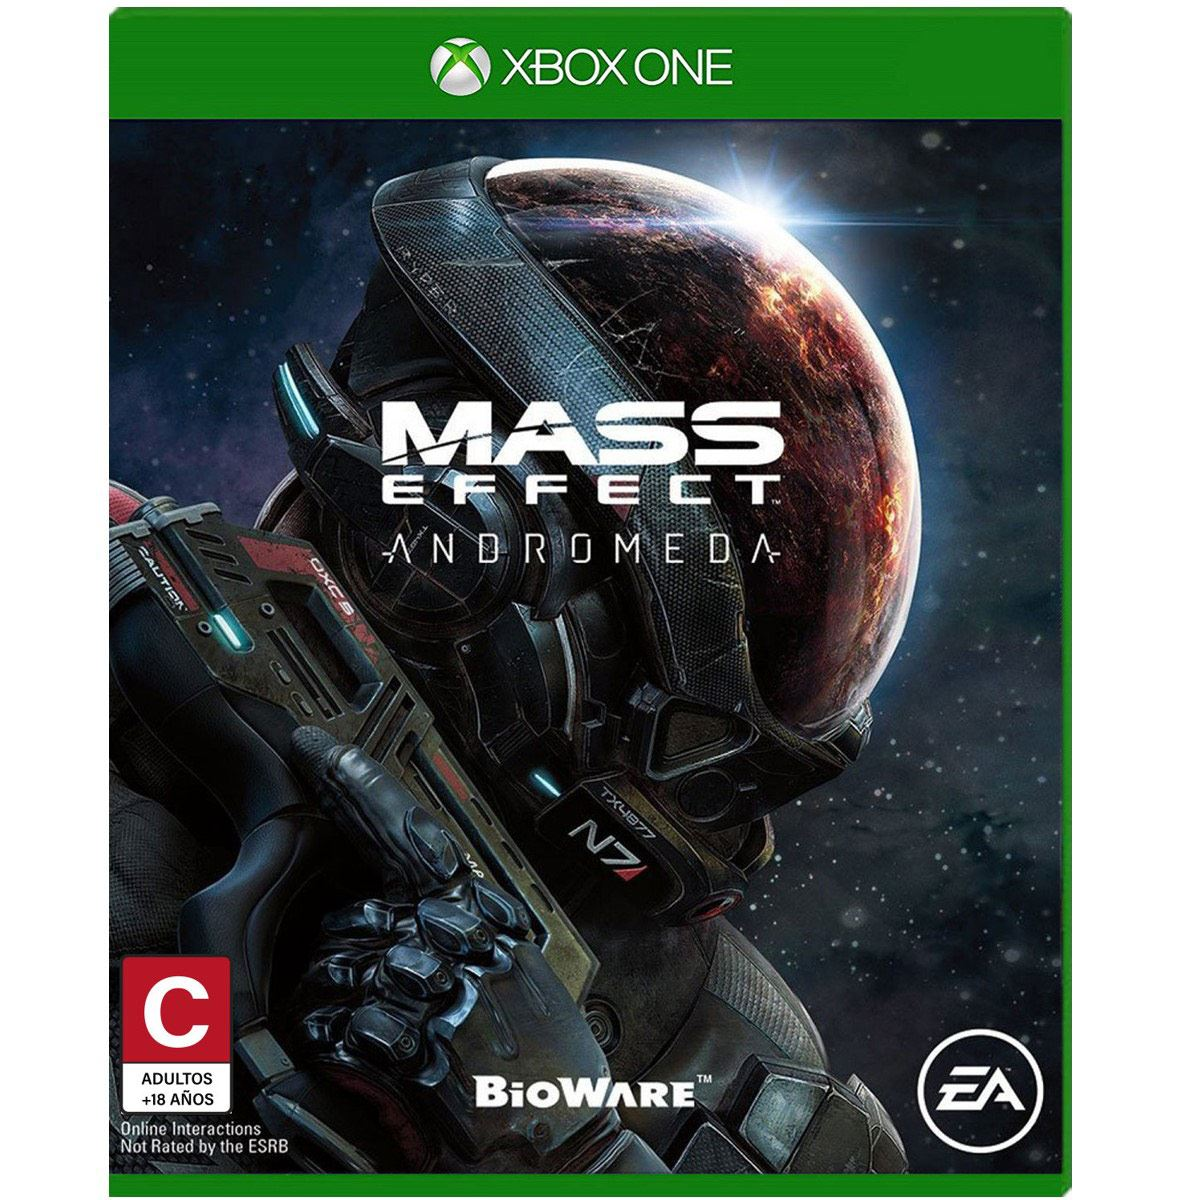 Xbox one mass effect andromeda  - Sanborns